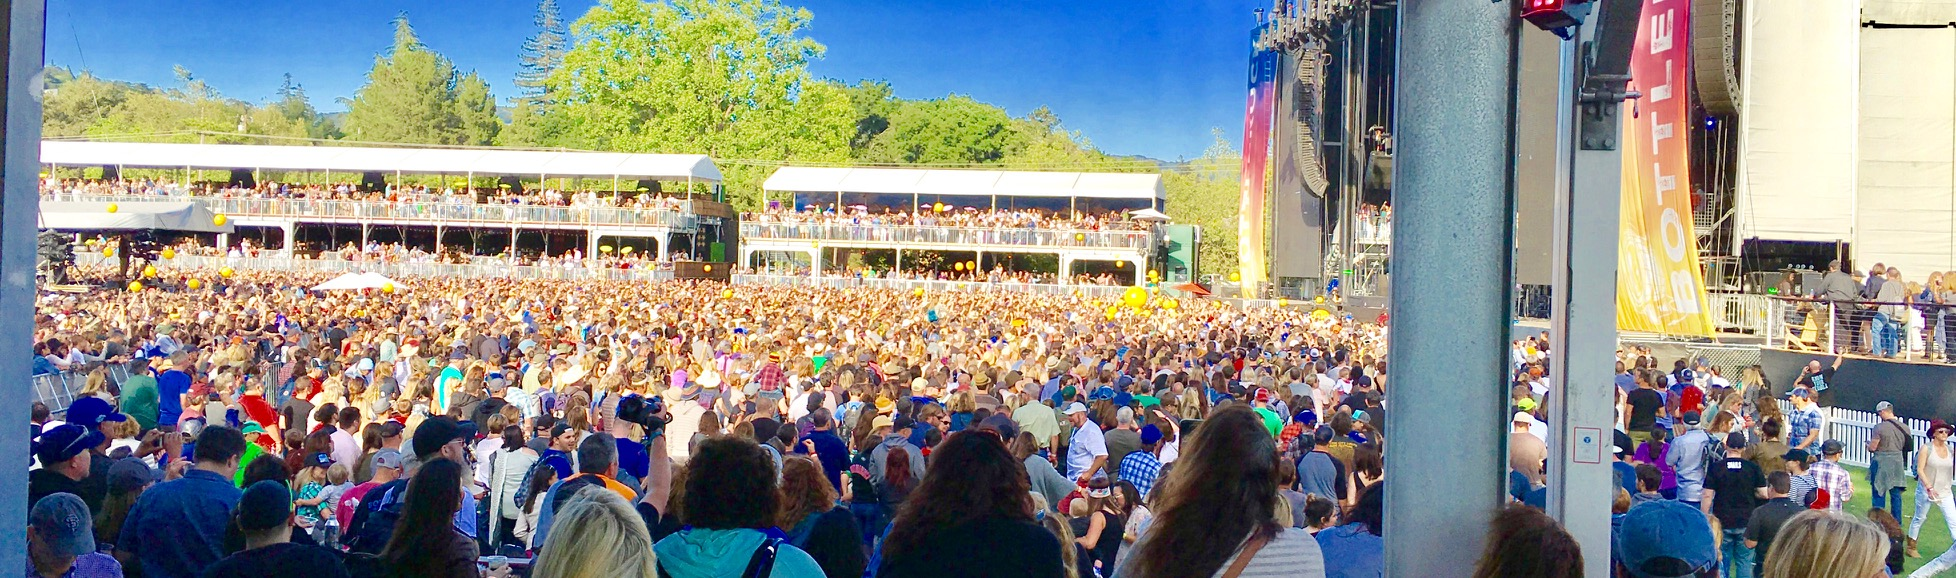 bottlerock crowd